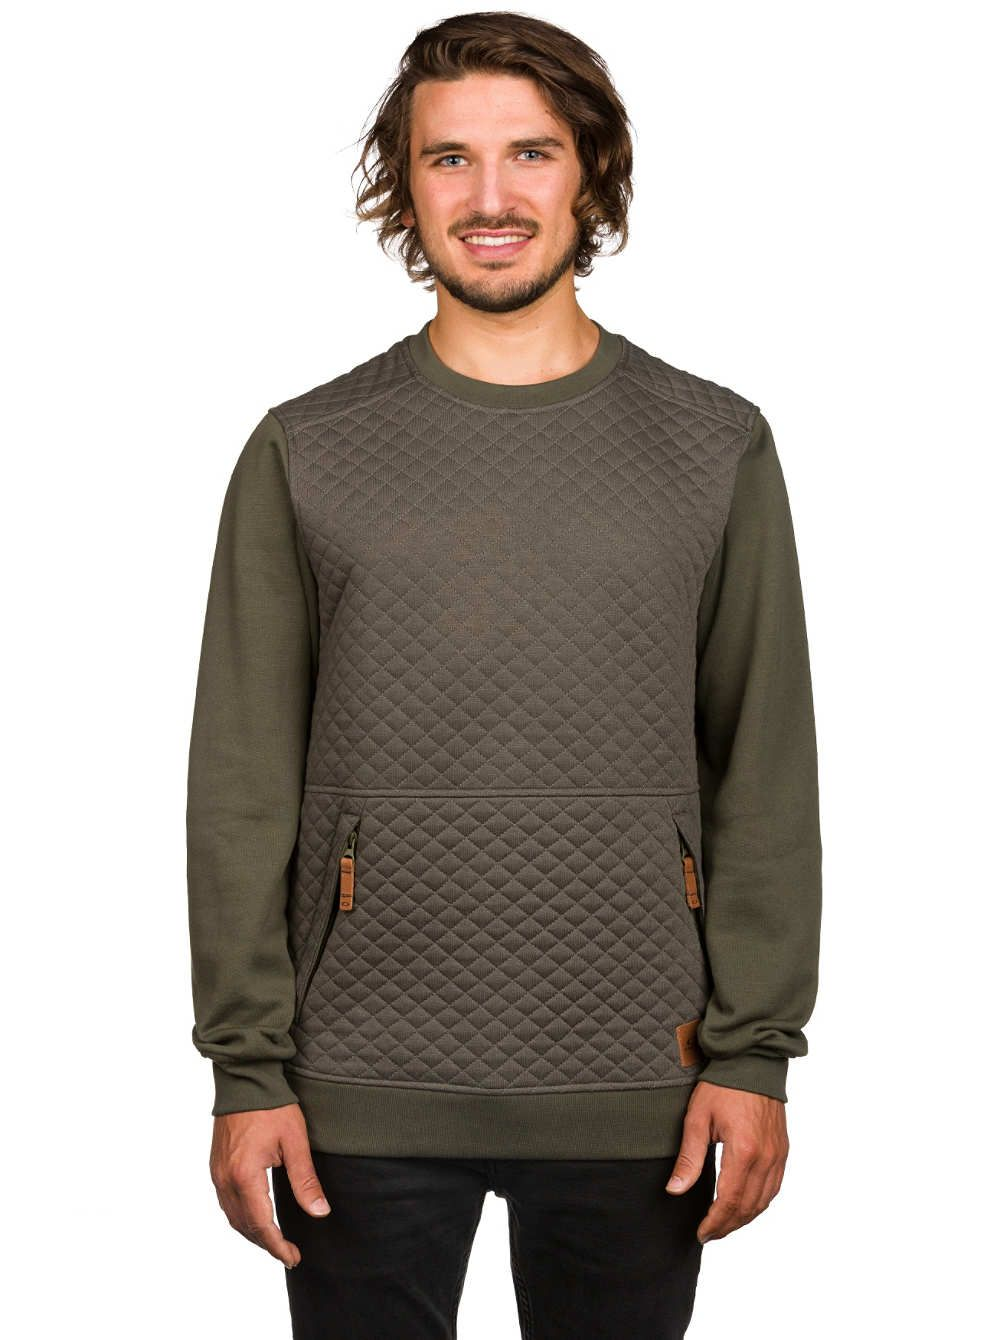 Buy Oakley Chips Thermal Crew Sweater online at blue-tomato.com